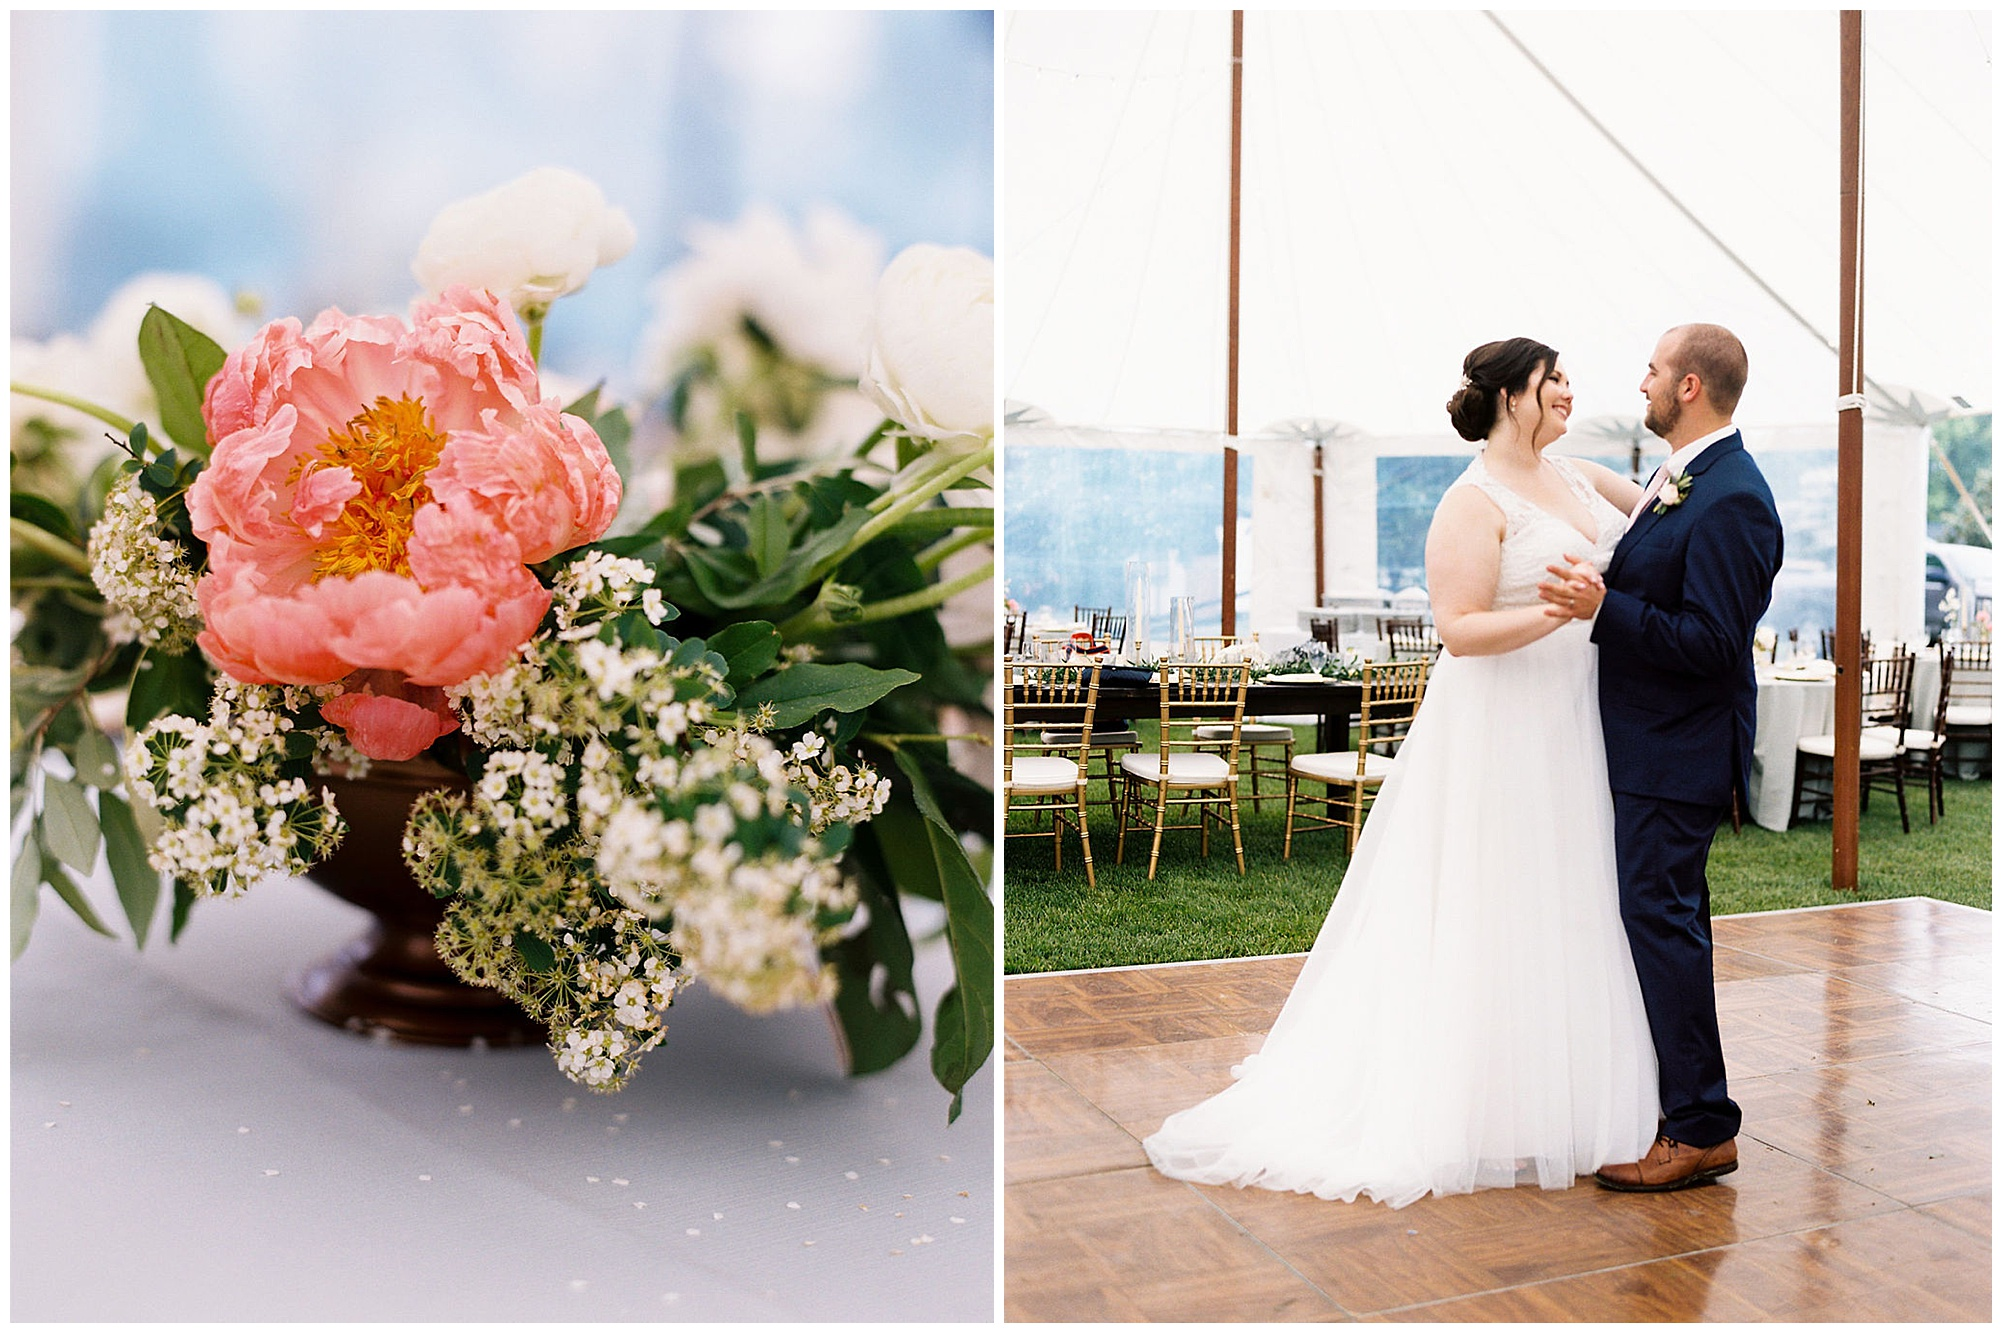 classic, timeless, modern, romantic wedding inspiration at inn at huntingfield wedding on maryland eastern shore. pink peonies floral arrangements and bride and groom dancing beneath tent at rainy day reception